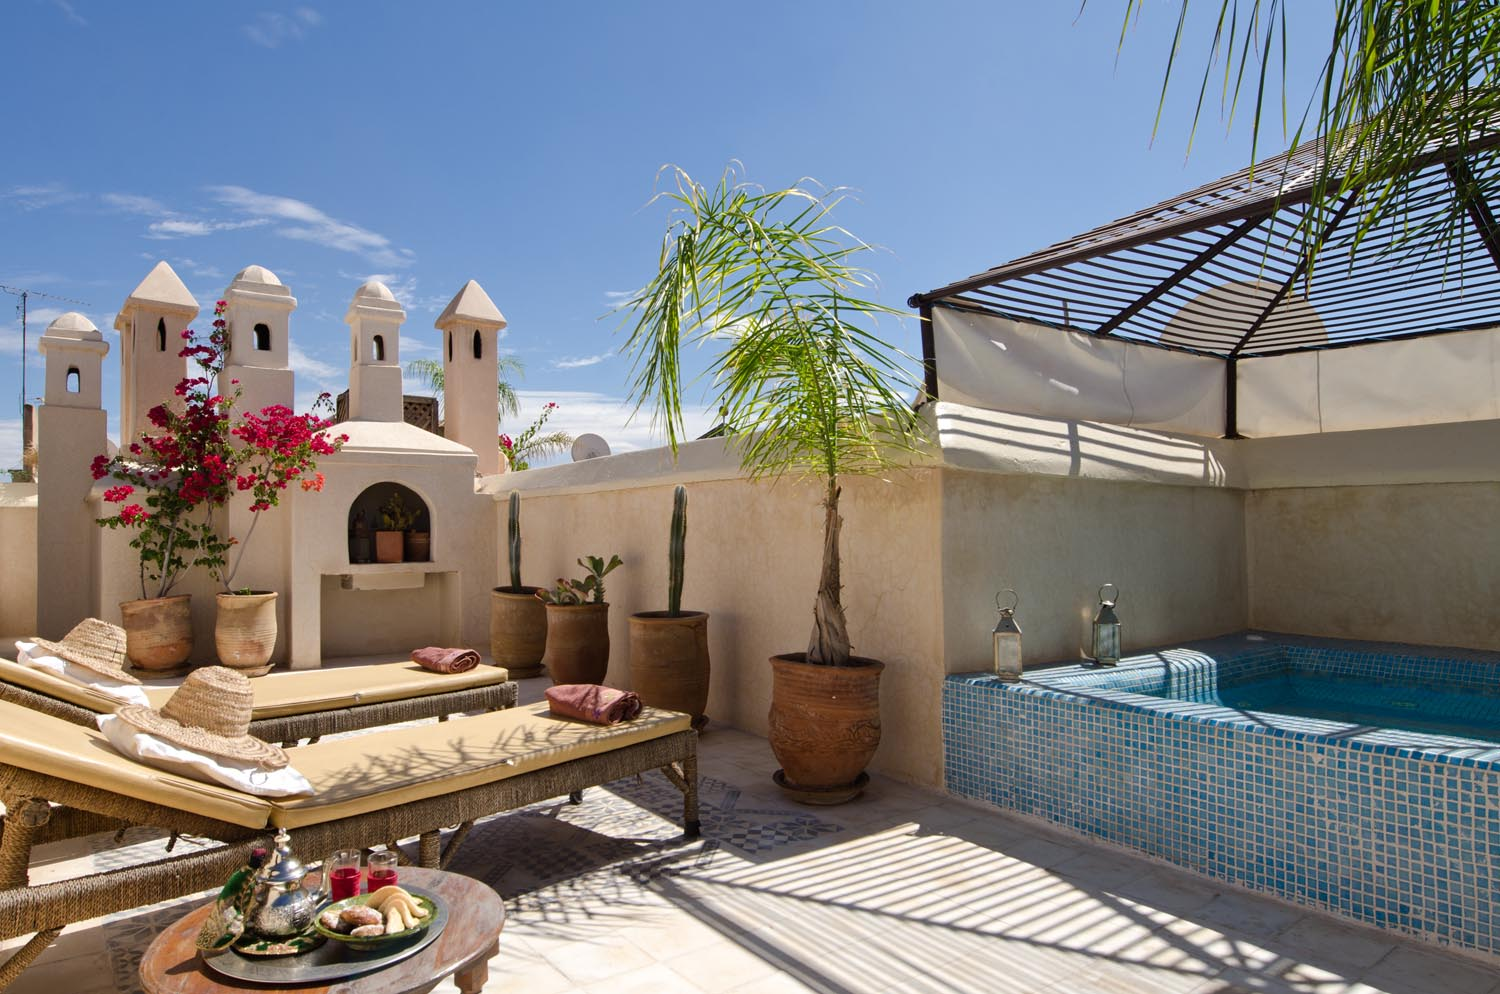 Riad vert luxury riad in marrakech morocco book riad for Terrasse decoration jardin